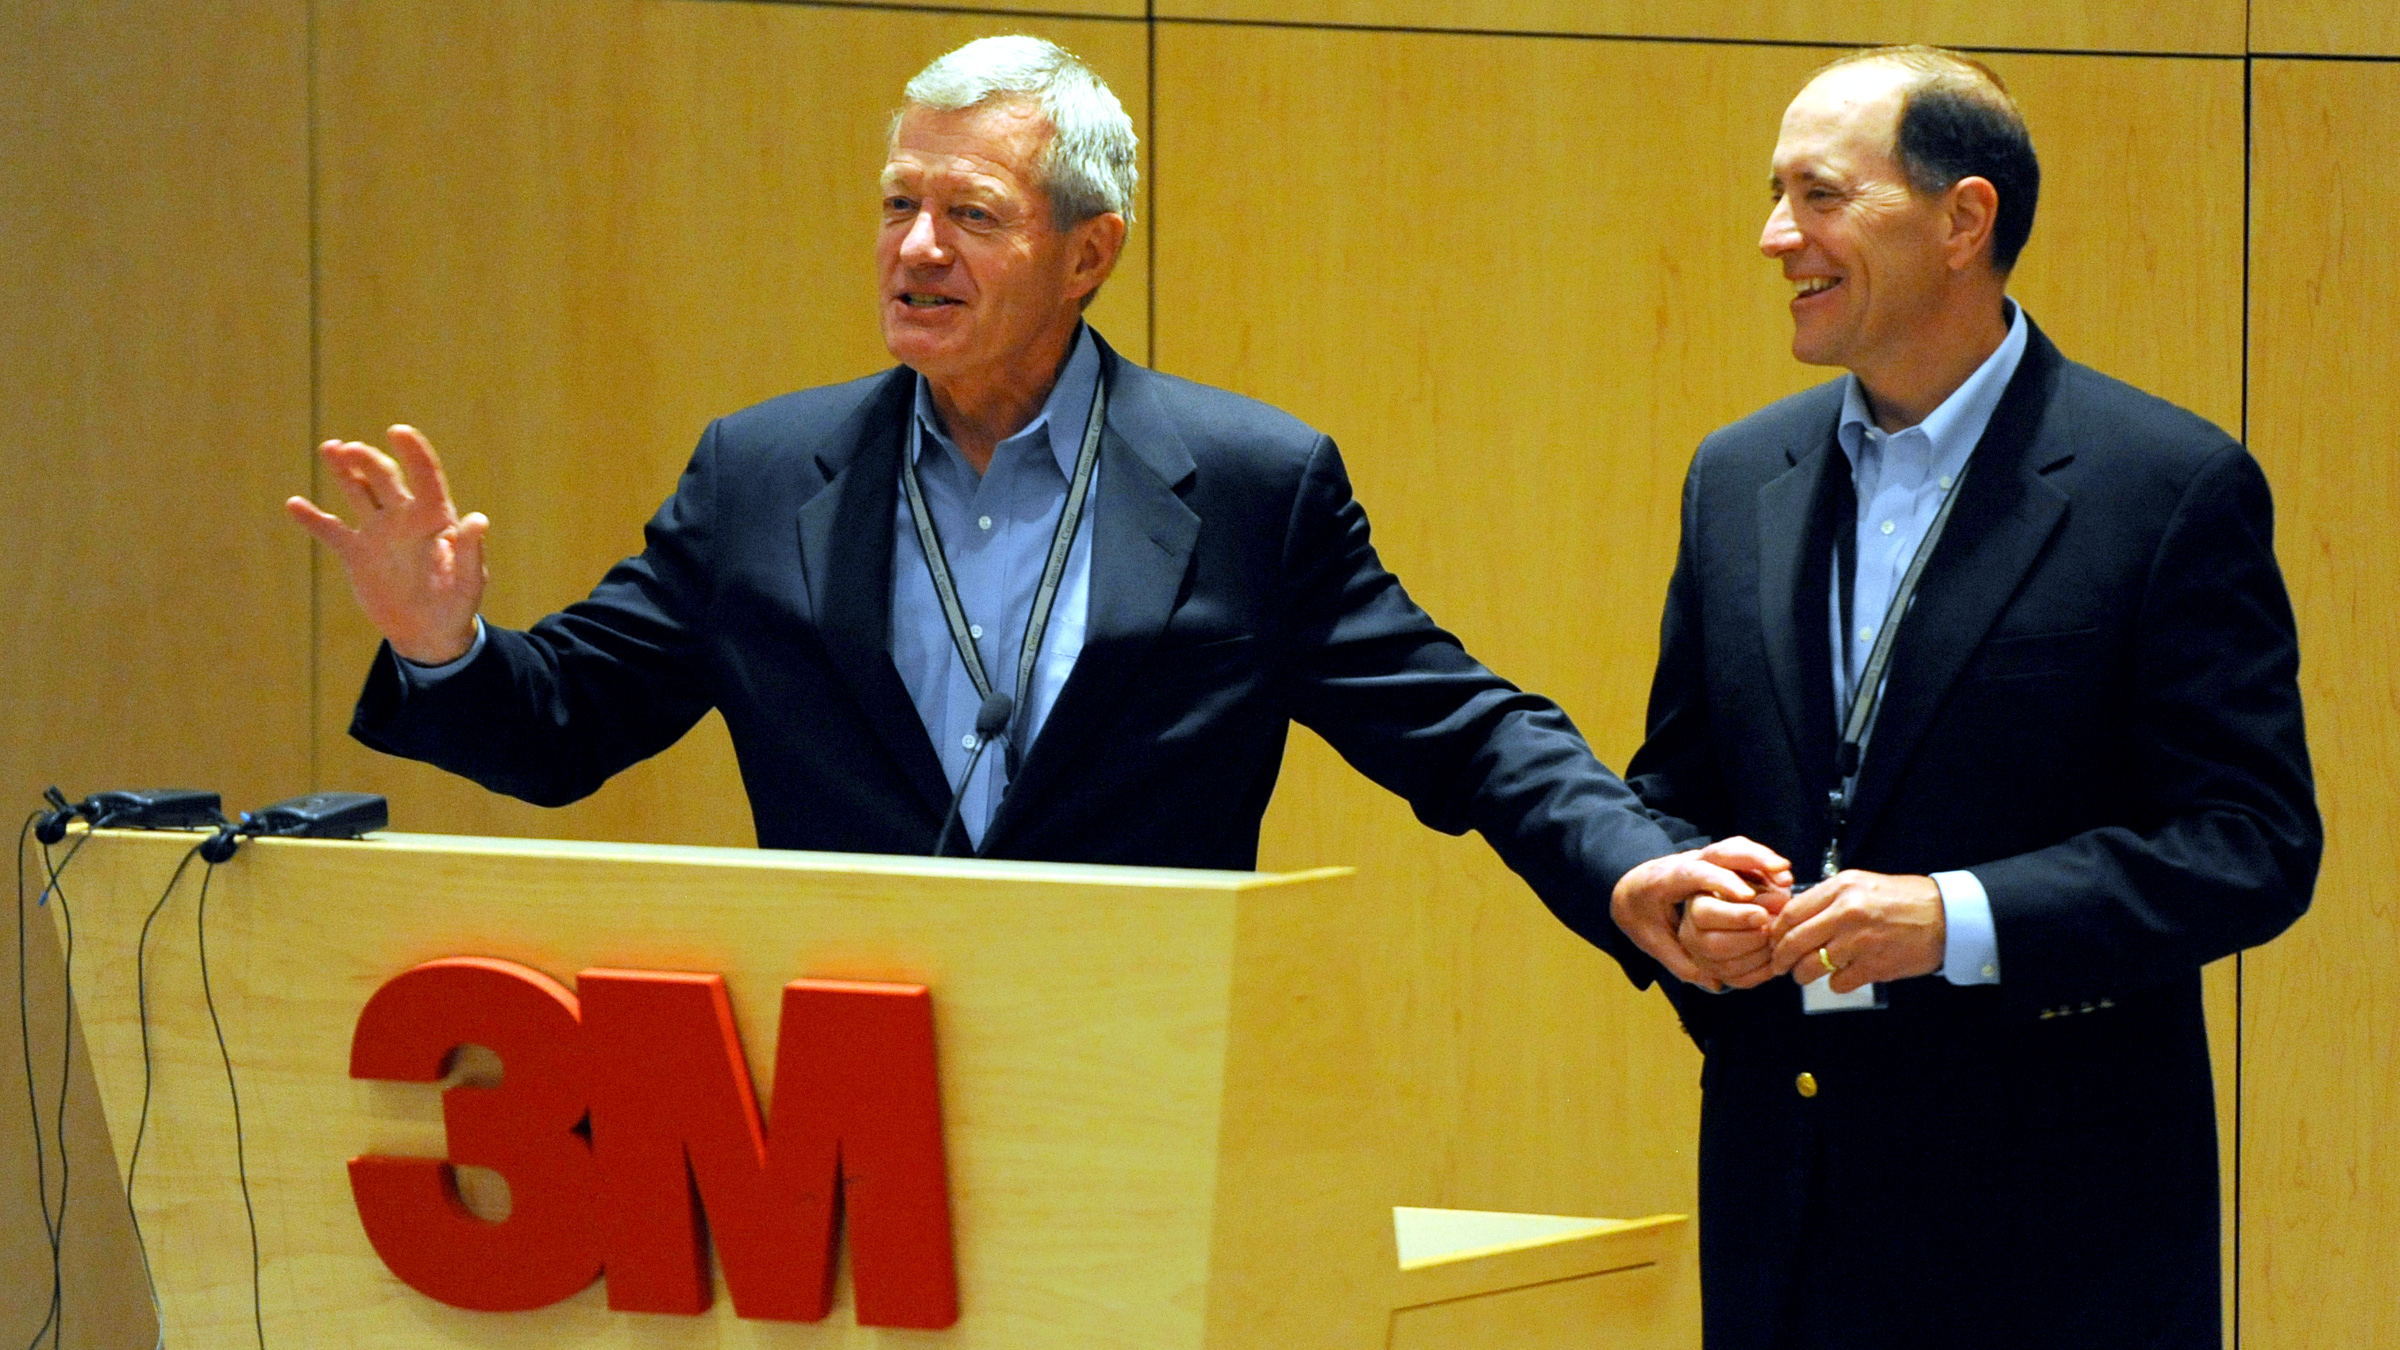 In this photo taken July 8, 2013, Senate Finance Committee Chairman Sen. Max Baucus, D-Mont., left, and the House Ways and Means Committee Chairman, Rep. Dave Camp, R-Mich., talk about tax reform to 3M employees at the 3M Innovation Center in Maplewood, Minn. Two of the most powerful members of Congress, Baucus, a Democrat, and Camp, a Republican, are touring the country to rally support for their effort to overhaul the nation's tax laws. They've developed a close friendship as they work to attract other lawmakers to their cause while helping Democrats and Republicans get to know each other a bit better. Their secret weapon: burgers and beer.